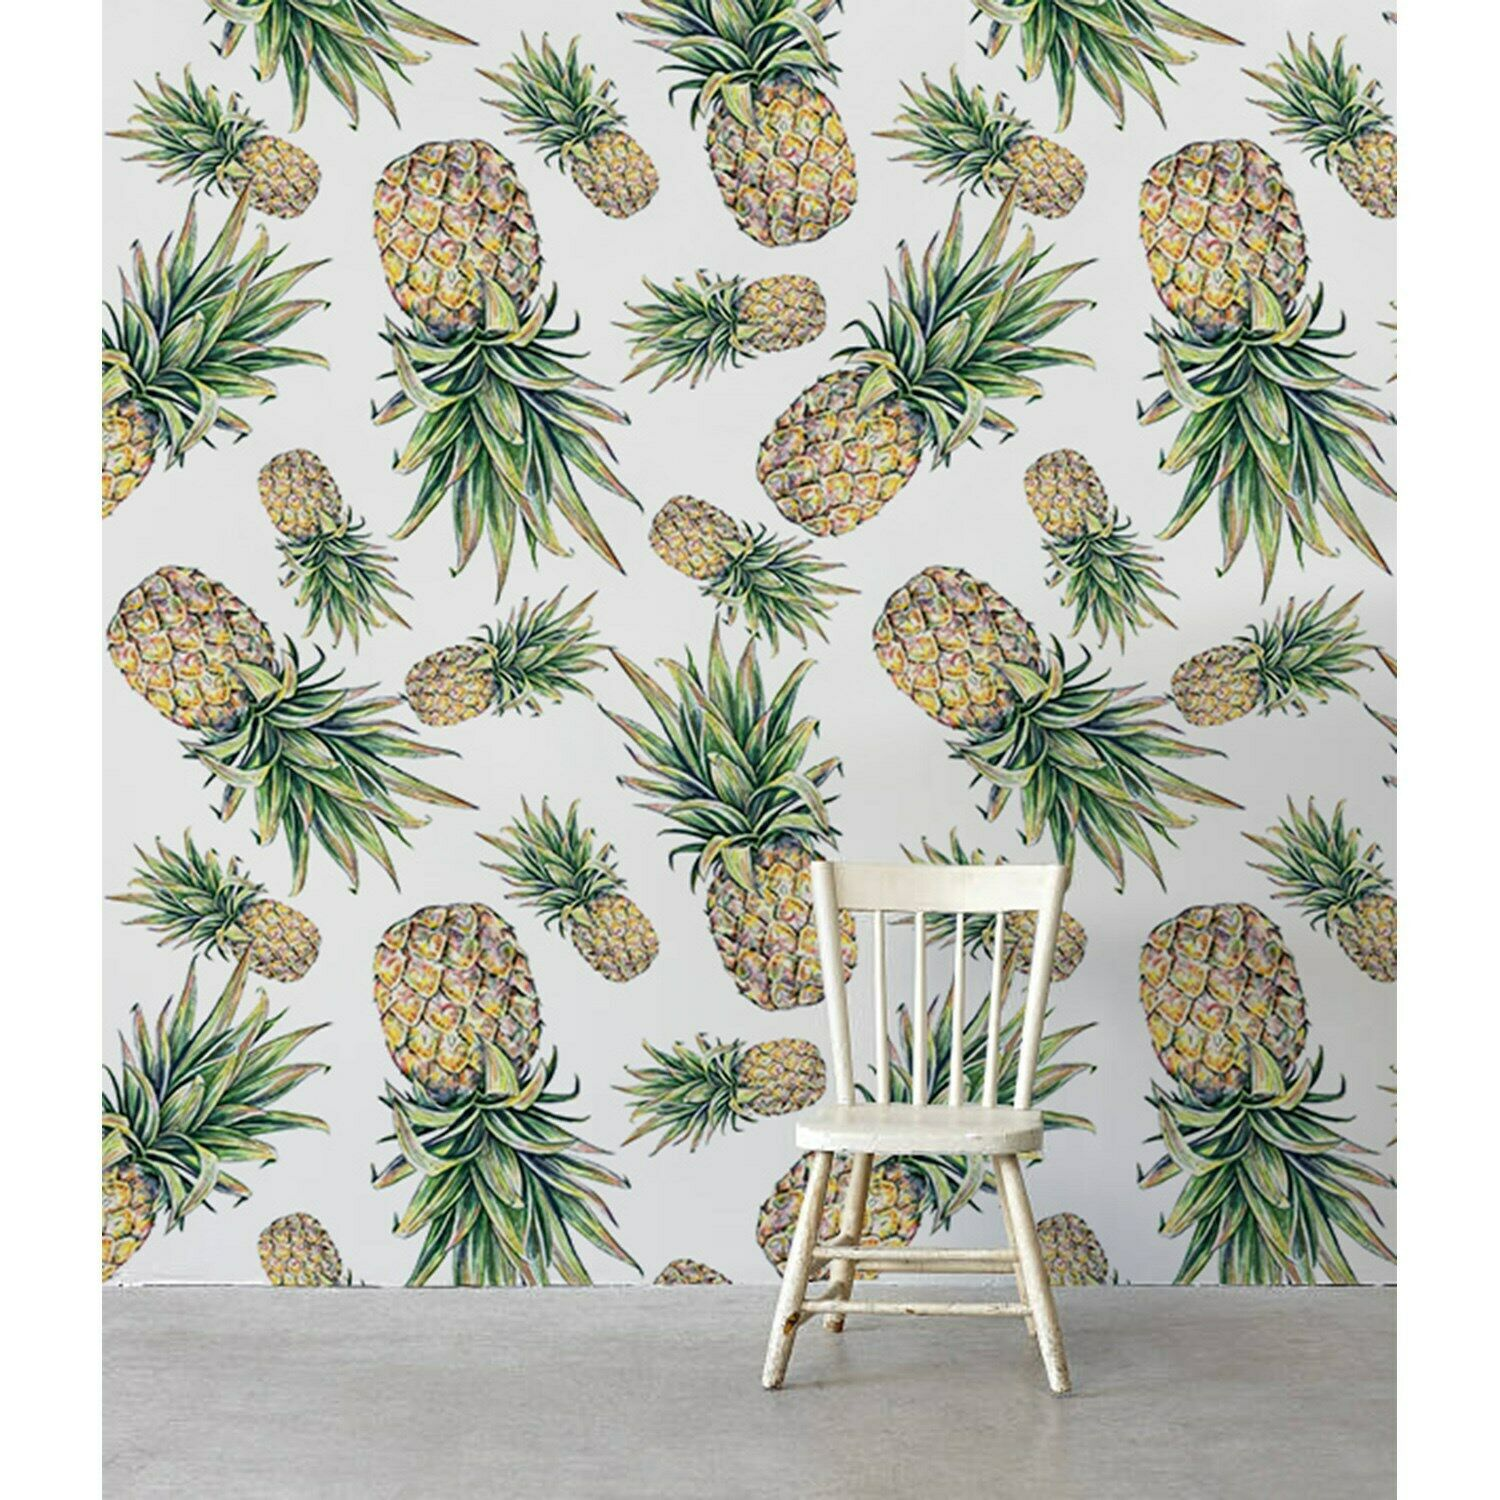 Falling Pineapples Non-Woven wallpaper waterFarbe feminime abstract painting